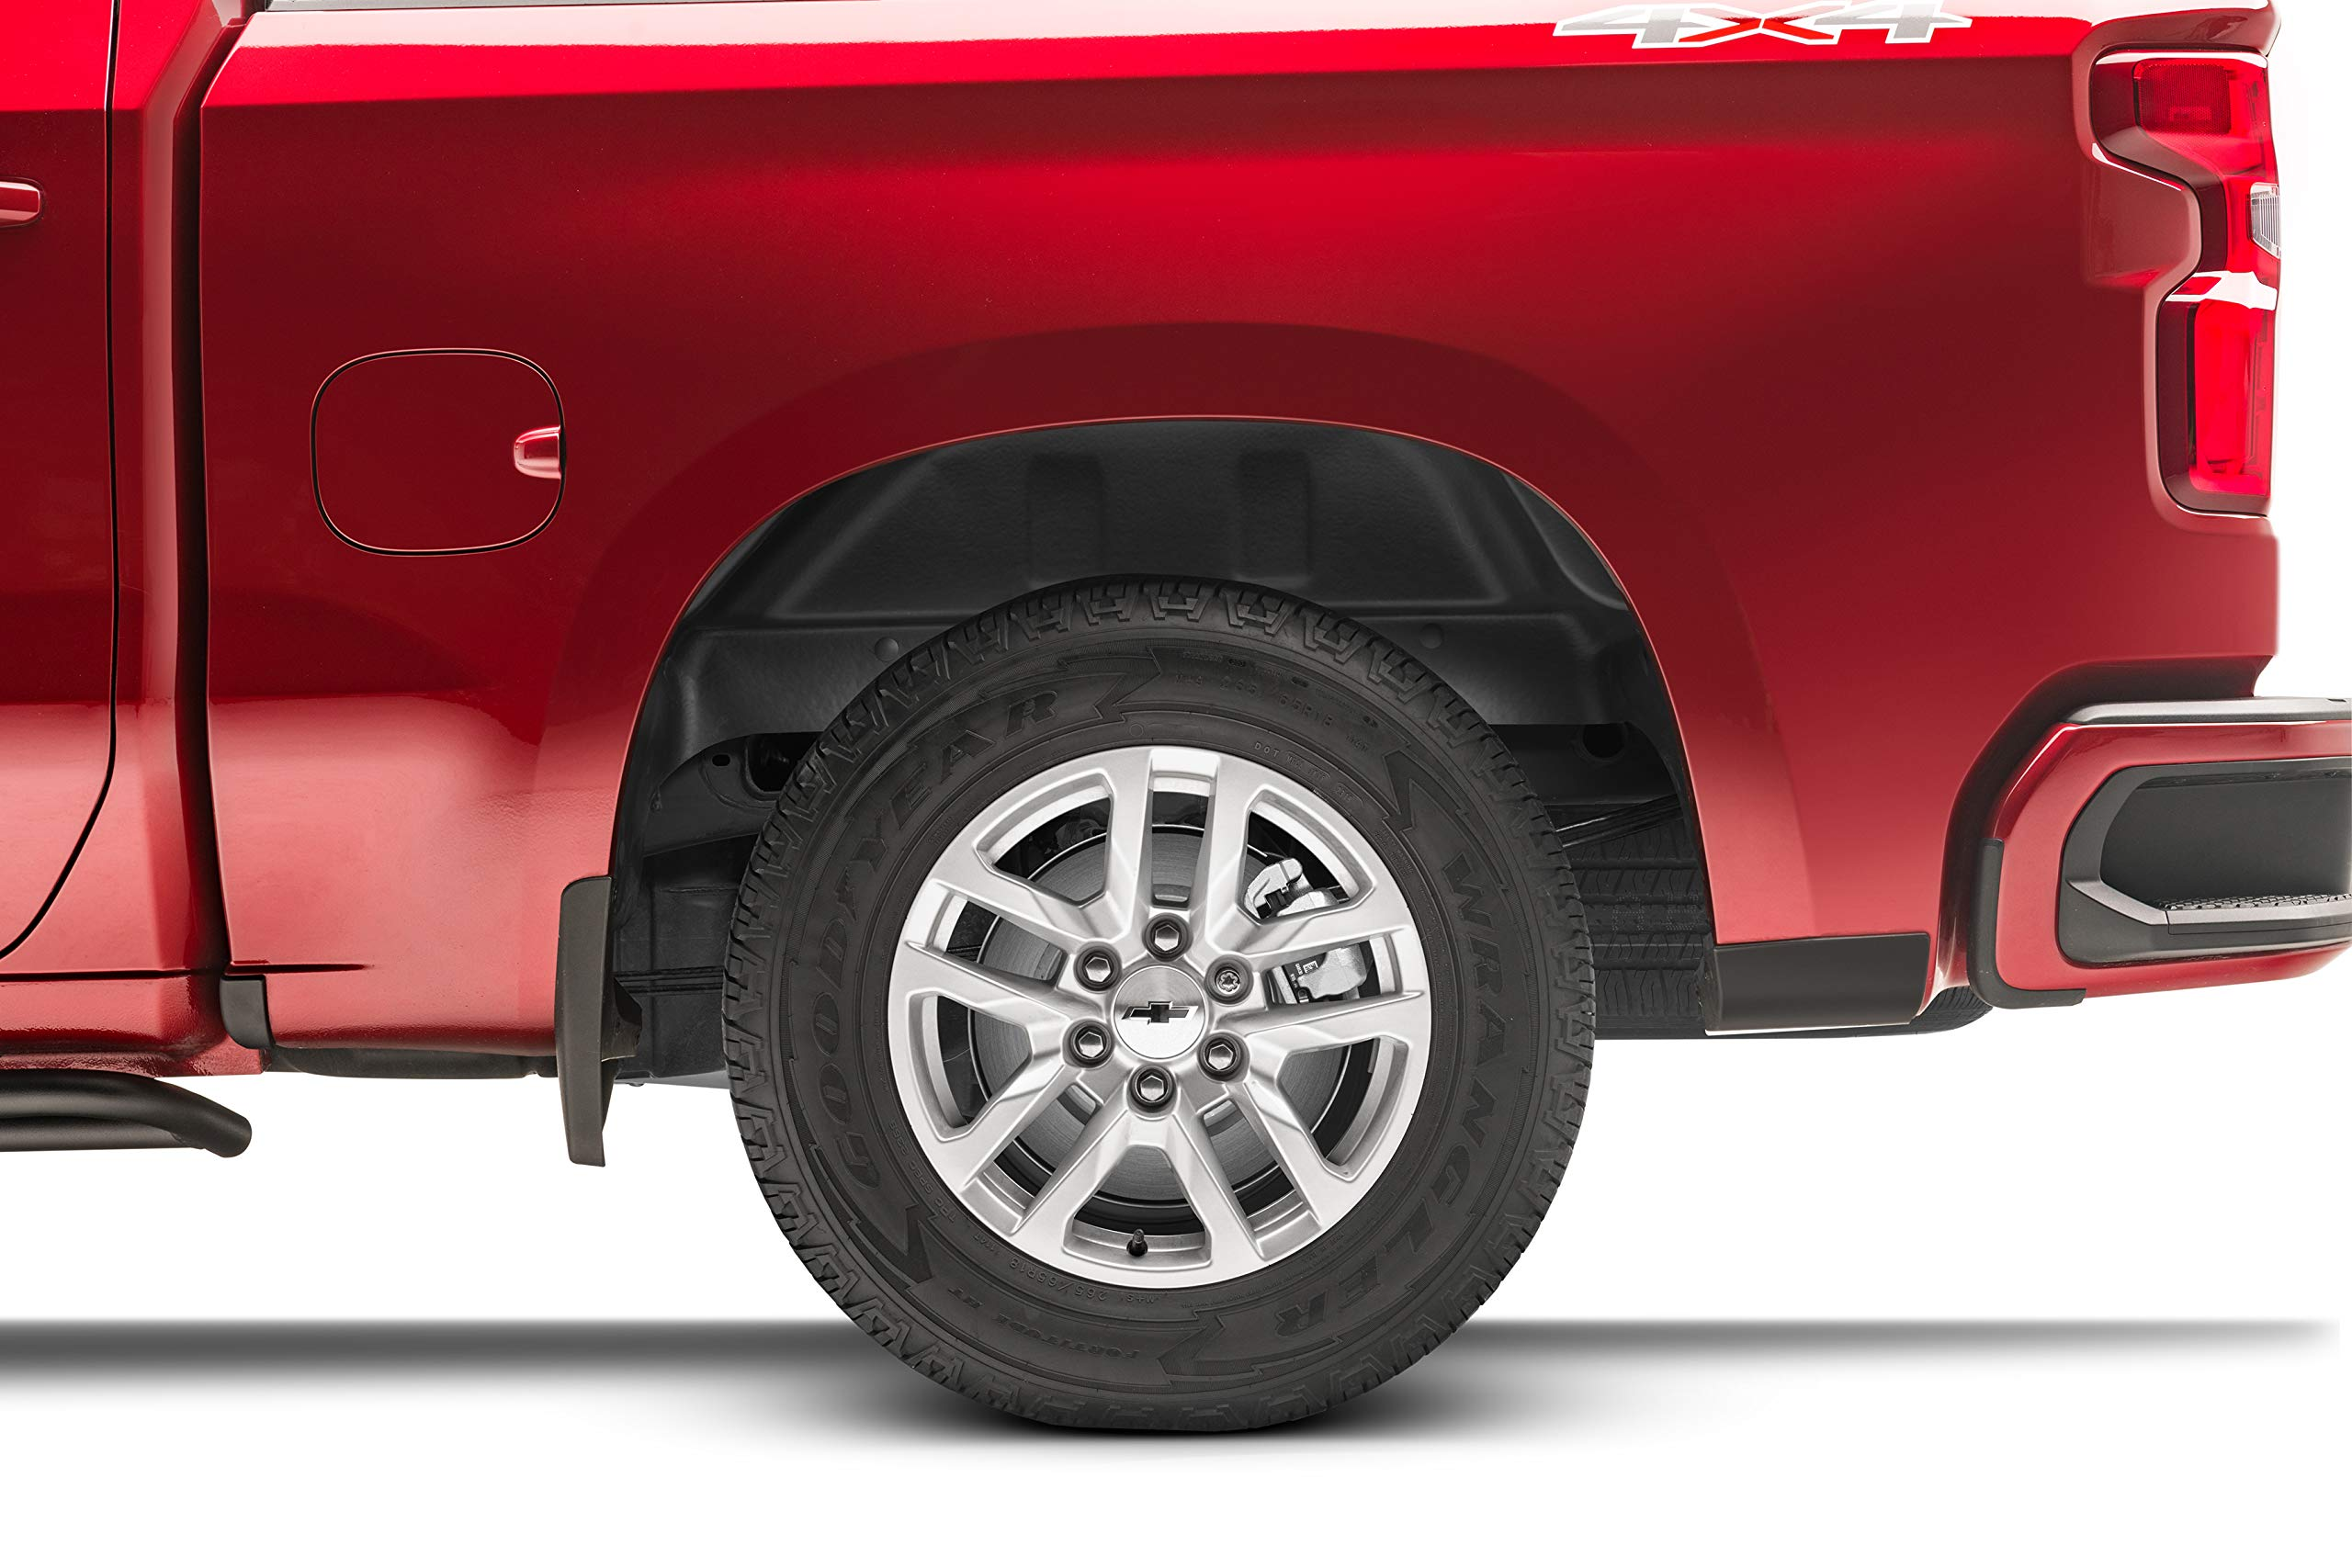 Rugged Liner Wheel Well Liners | WWC19 | fits 2019 Chevy Silverado 1500, New Body Style by Rugged Liner